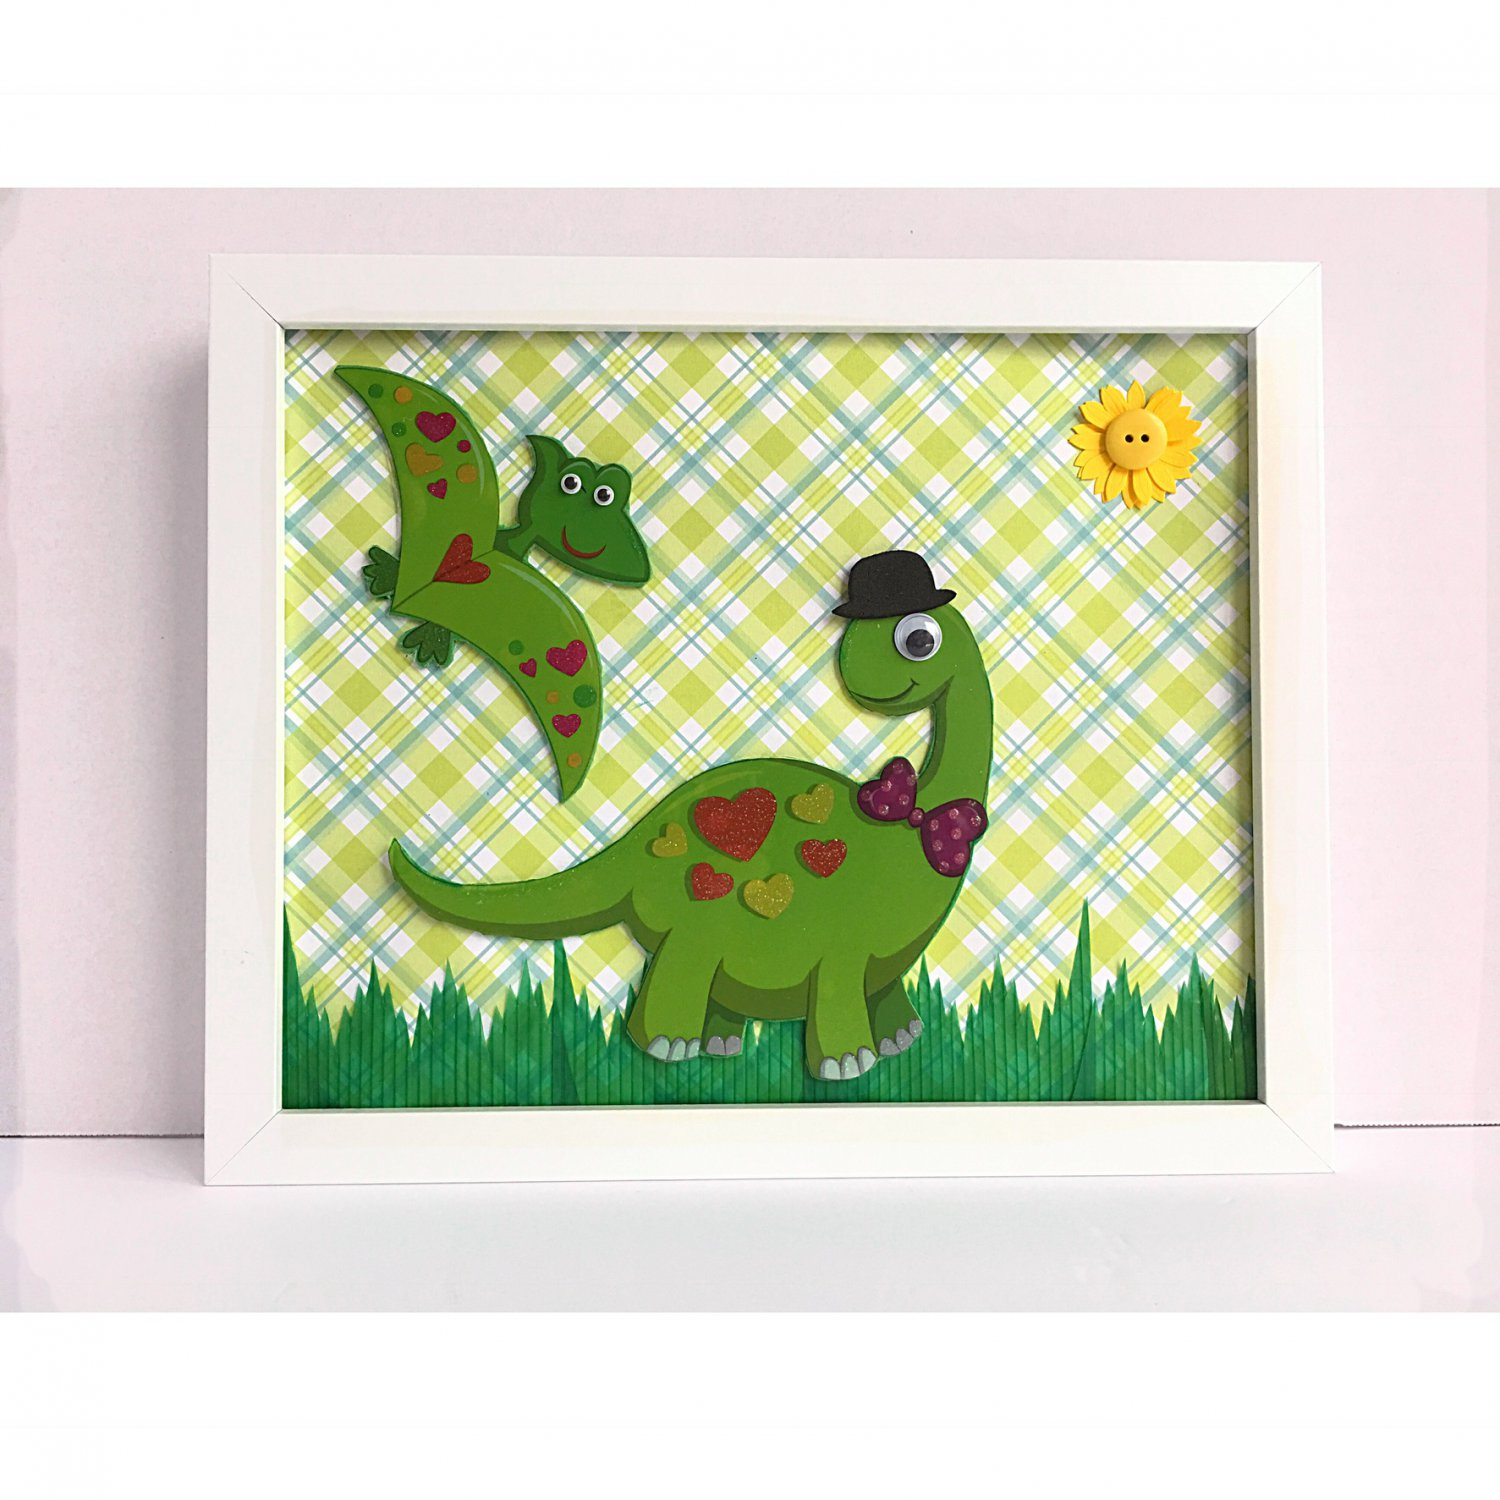 Green dinosaur kids wall room decor for Kids dinosaur room decor